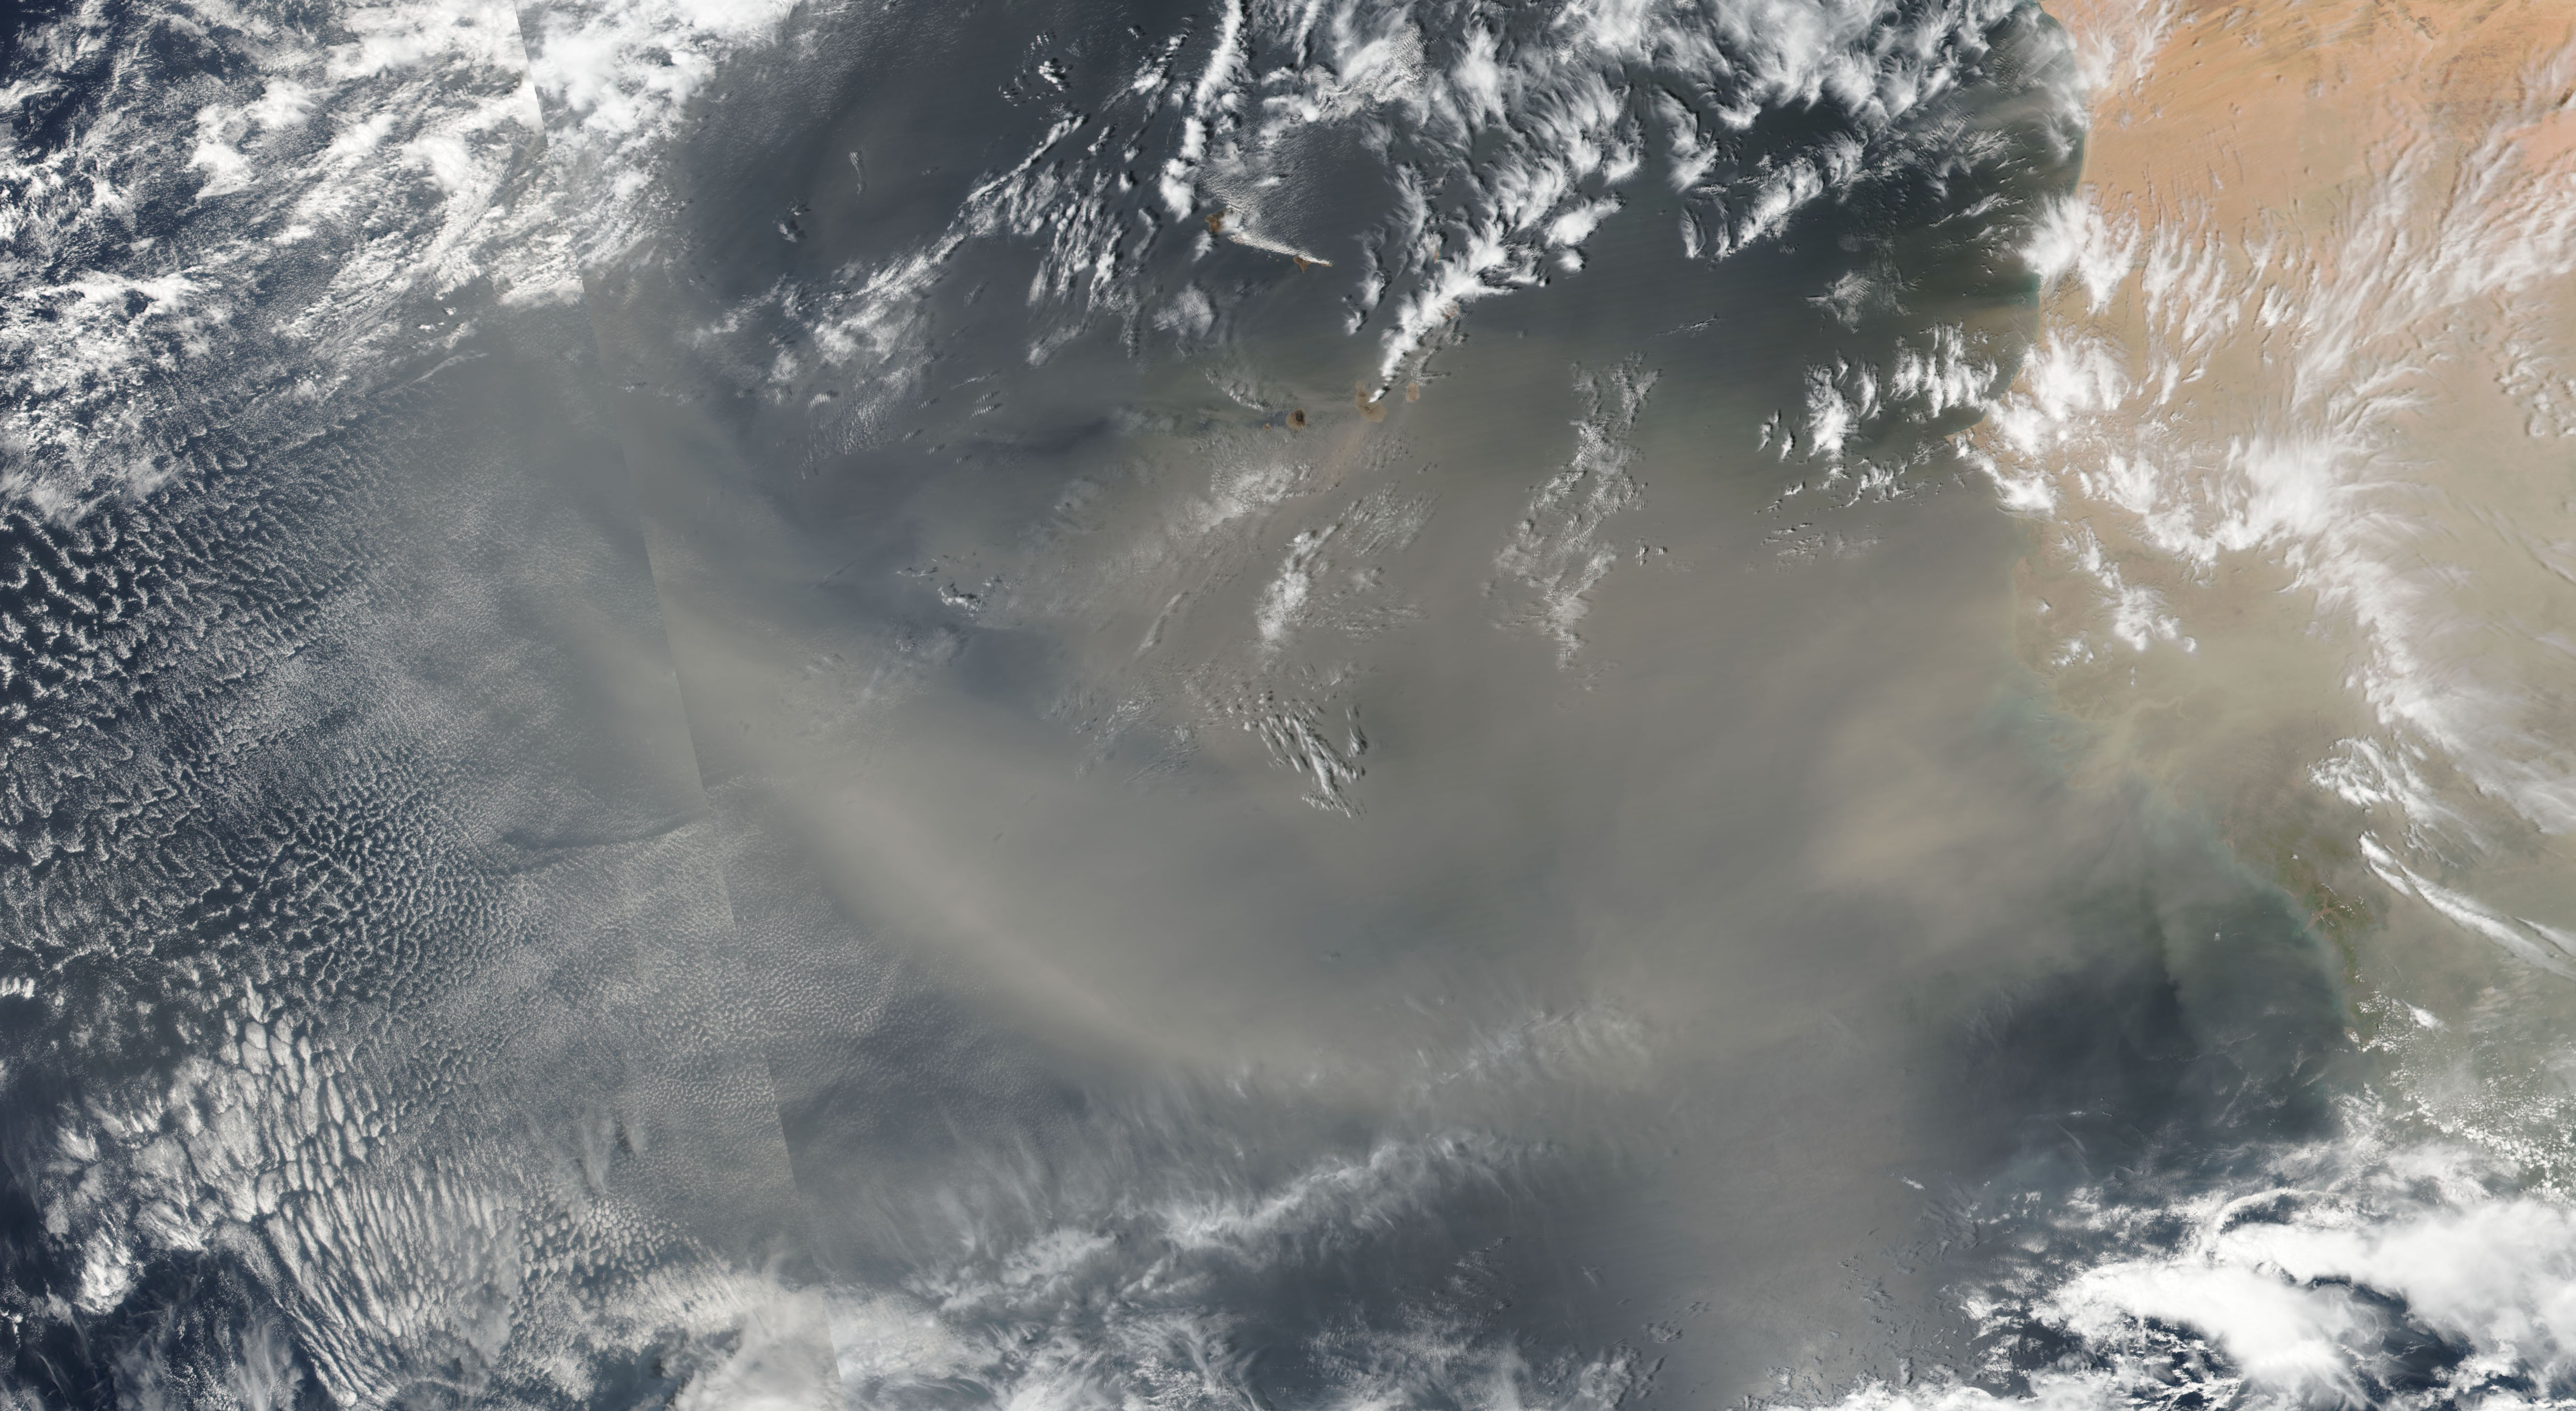 Today's Image of the Day comes from the NASA Earth Observatory and features a look at dust from the Sahara Desert being carried over the Atlantic Ocean.